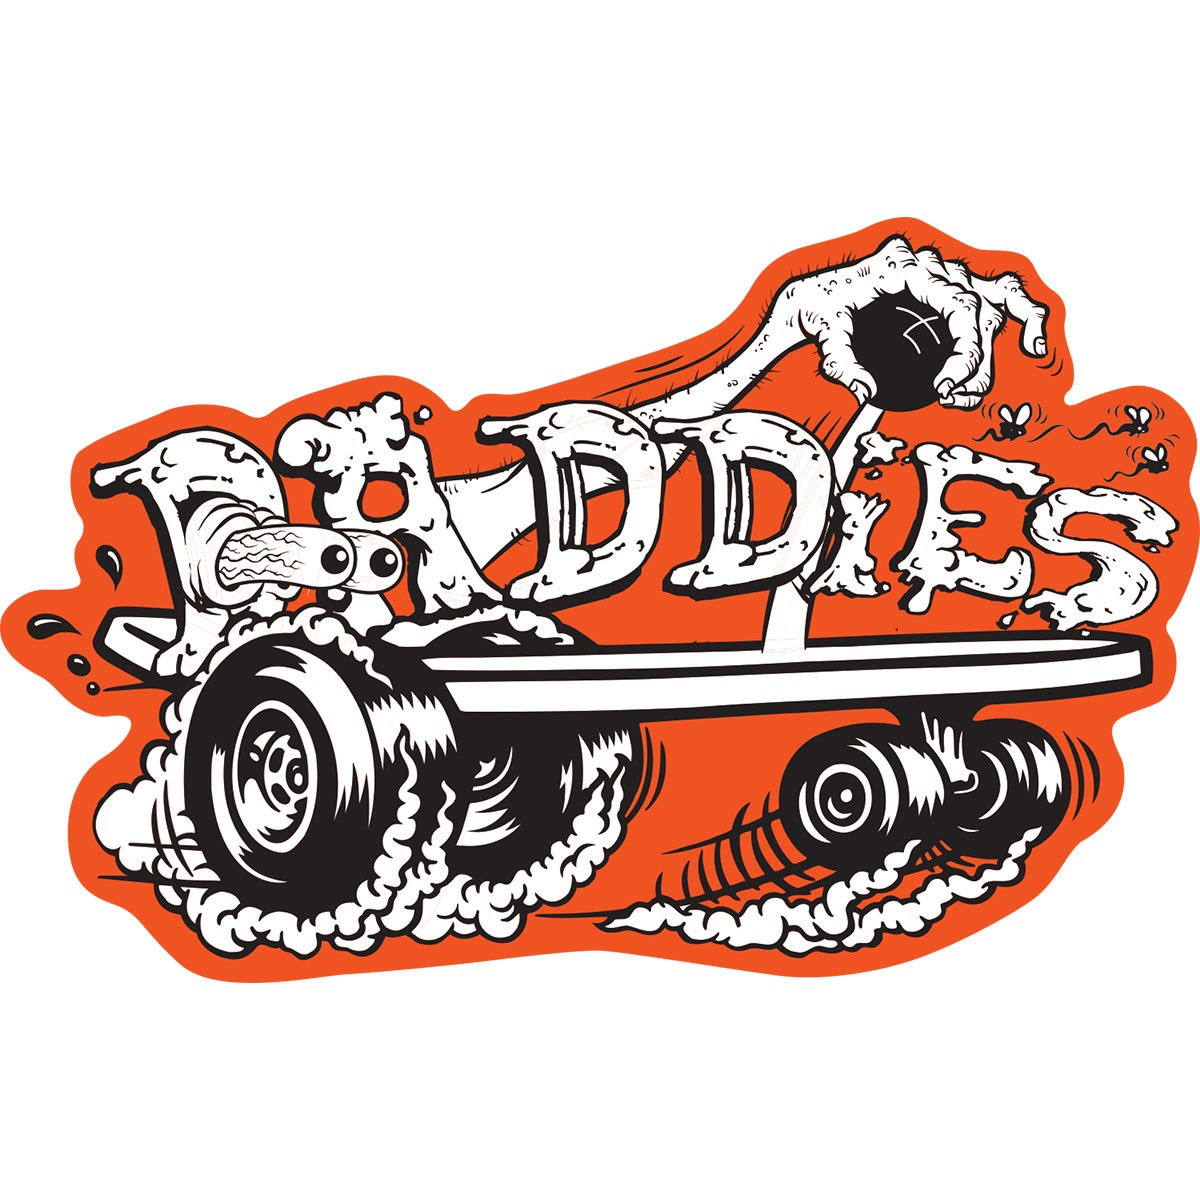 Daddies Board Shop Sticker of the Month - October